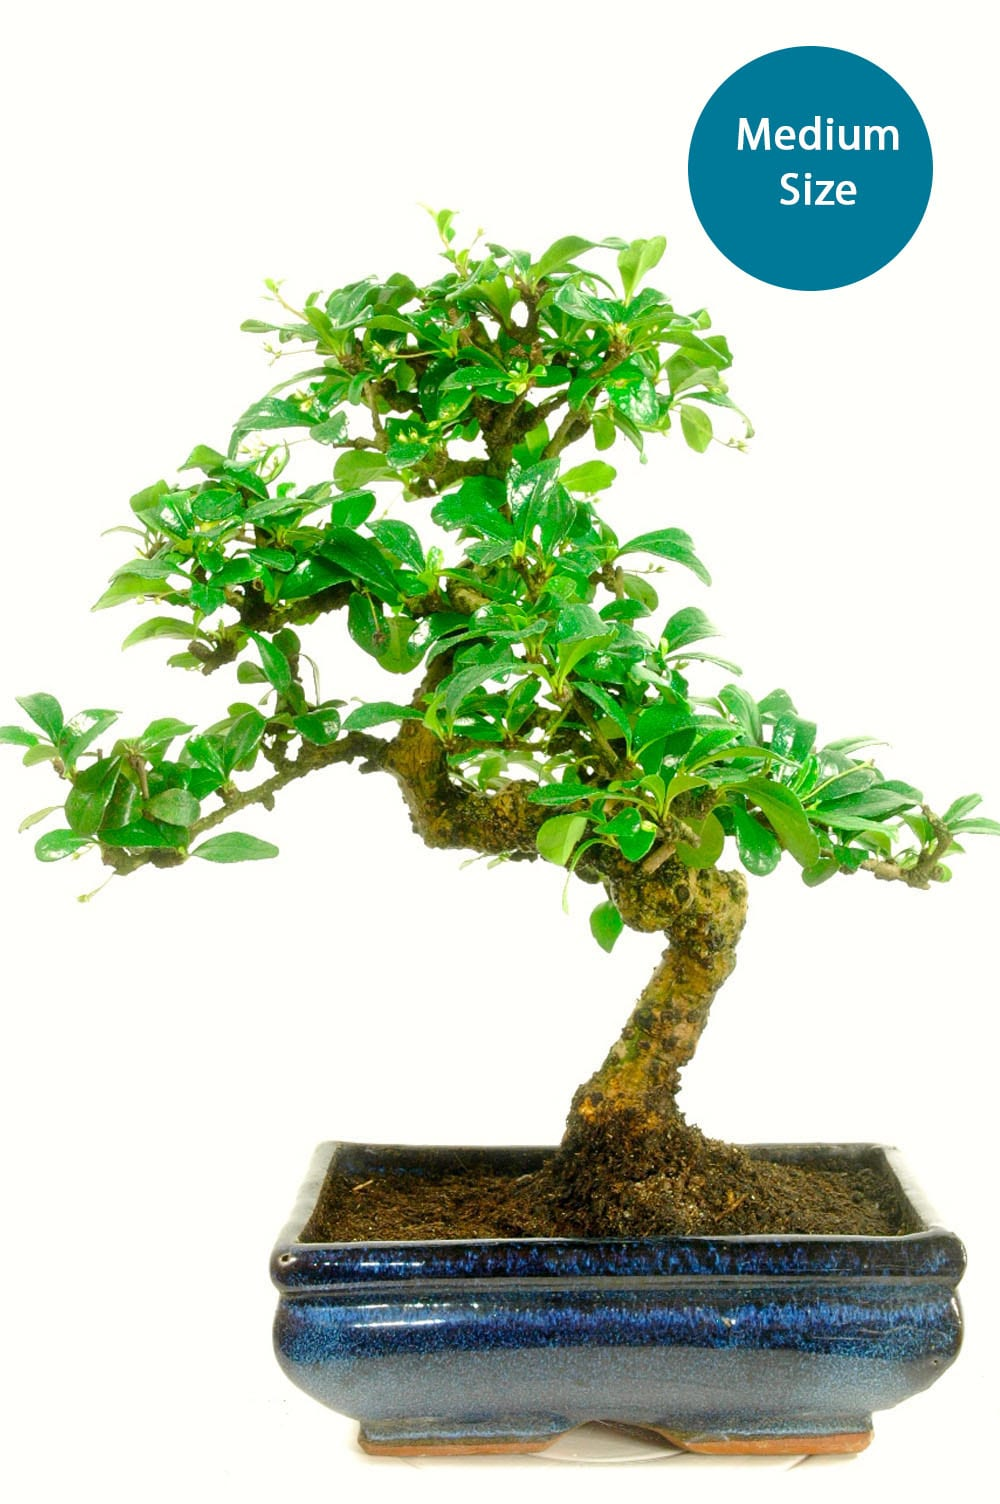 Medium sized tea tree bonsai with stunning white flowers